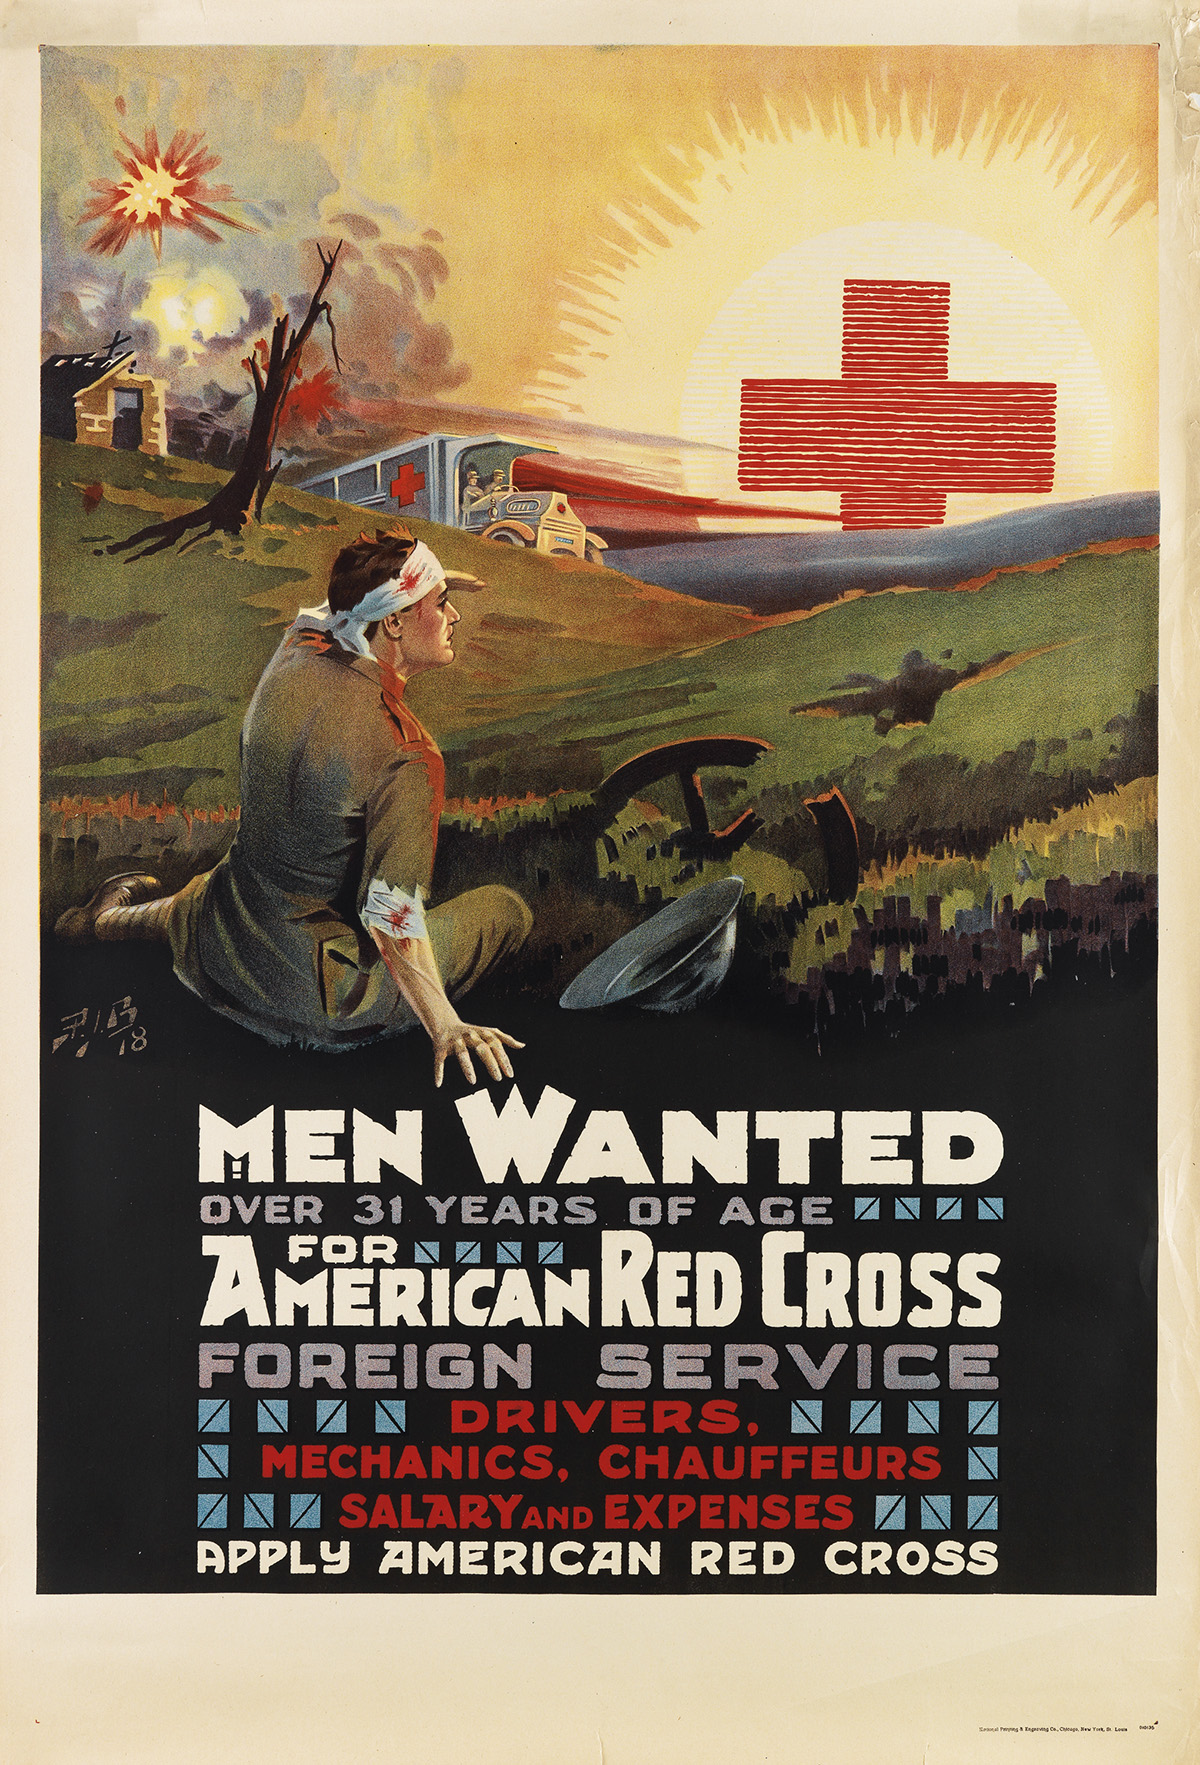 PIB-(MONOGRAM-UNKNOWN)-MEN-WANTED--FOR-AMERICAN-RED-CROSS-FO